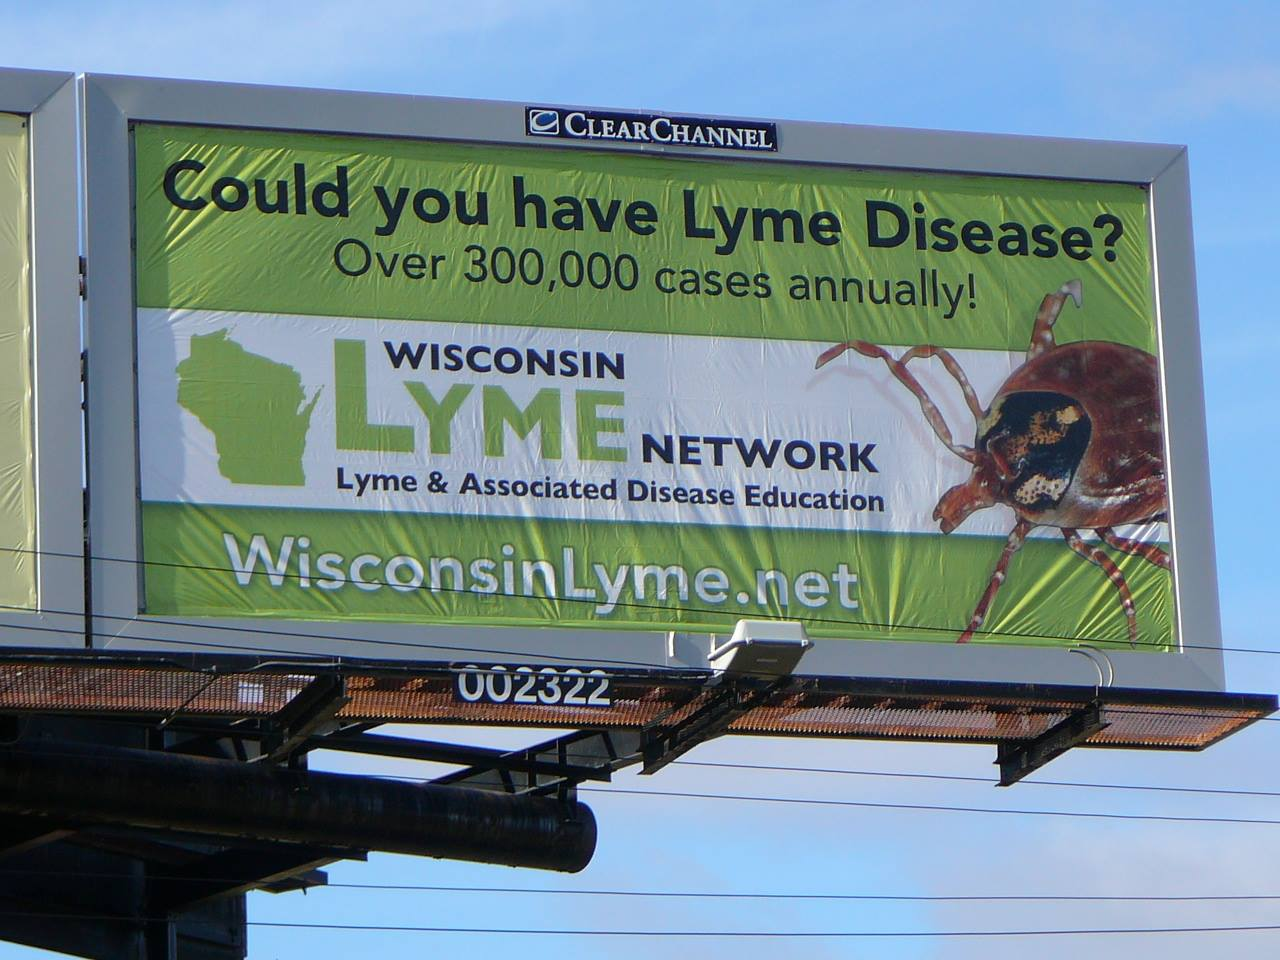 The Wisconsin Lyme Network nonprofit organization just launched a Lyme Awareness Campaign and placed 5 poster billboards up in South eastern WI. This one is located on Capital Dr. in Pewaukee. More Information at: Wisconsin Lyme Network